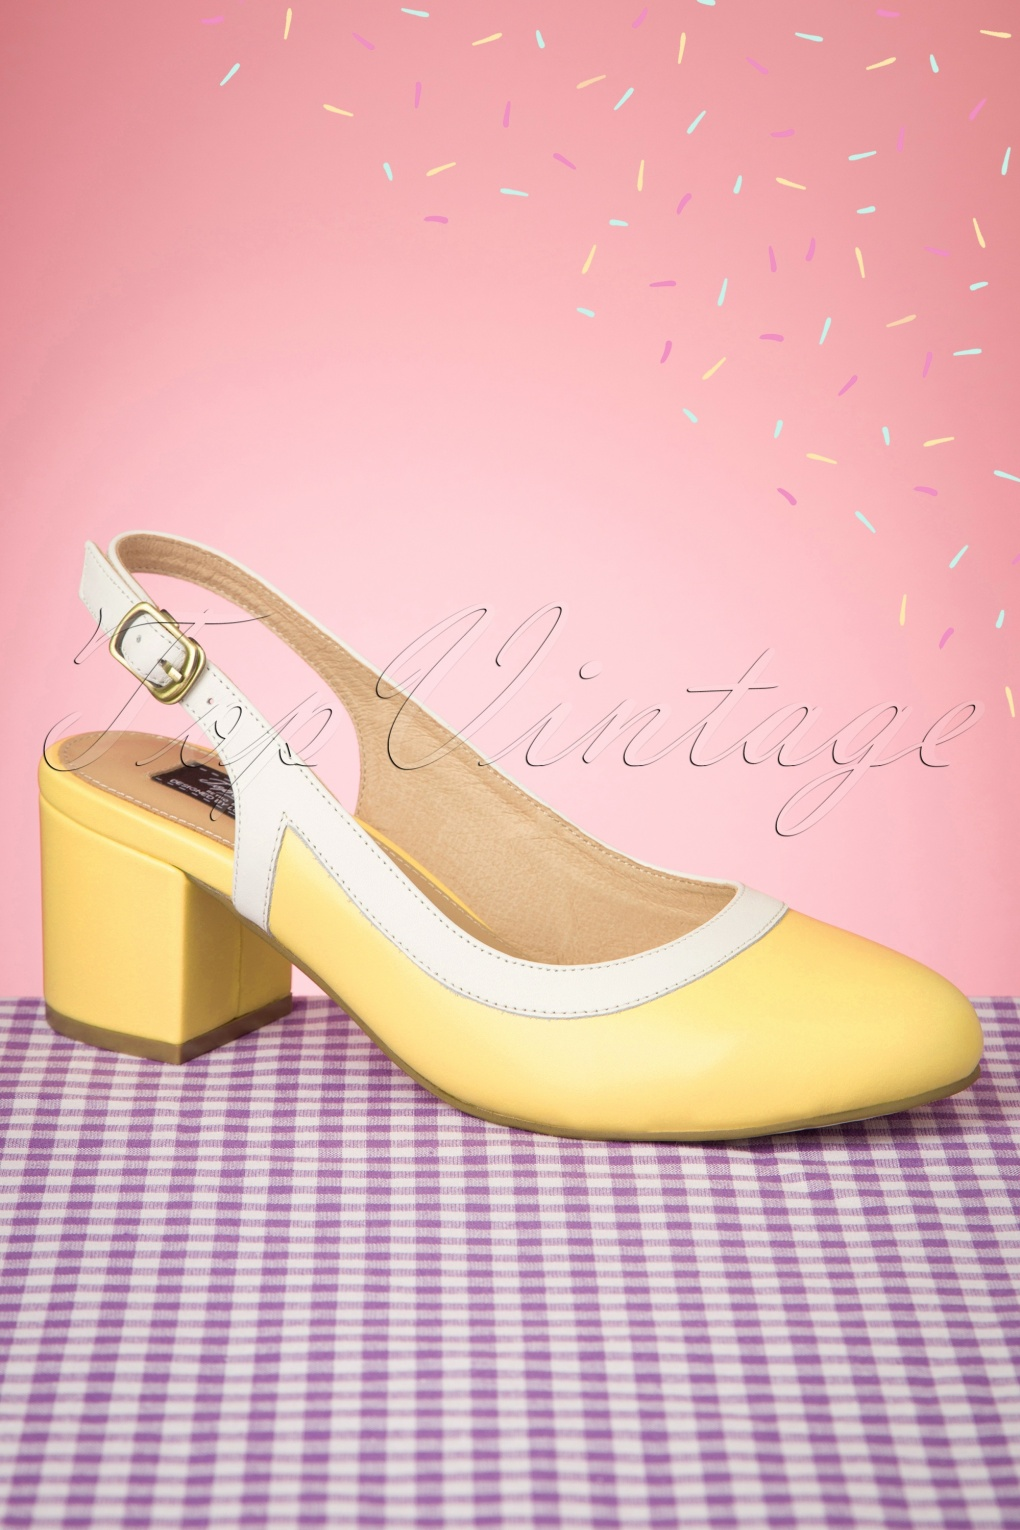 1960s Style Dresses, Clothing, Shoes UK 60s Eve Pastello Slingback Pumps in Off White and Yellow £50.40 AT vintagedancer.com